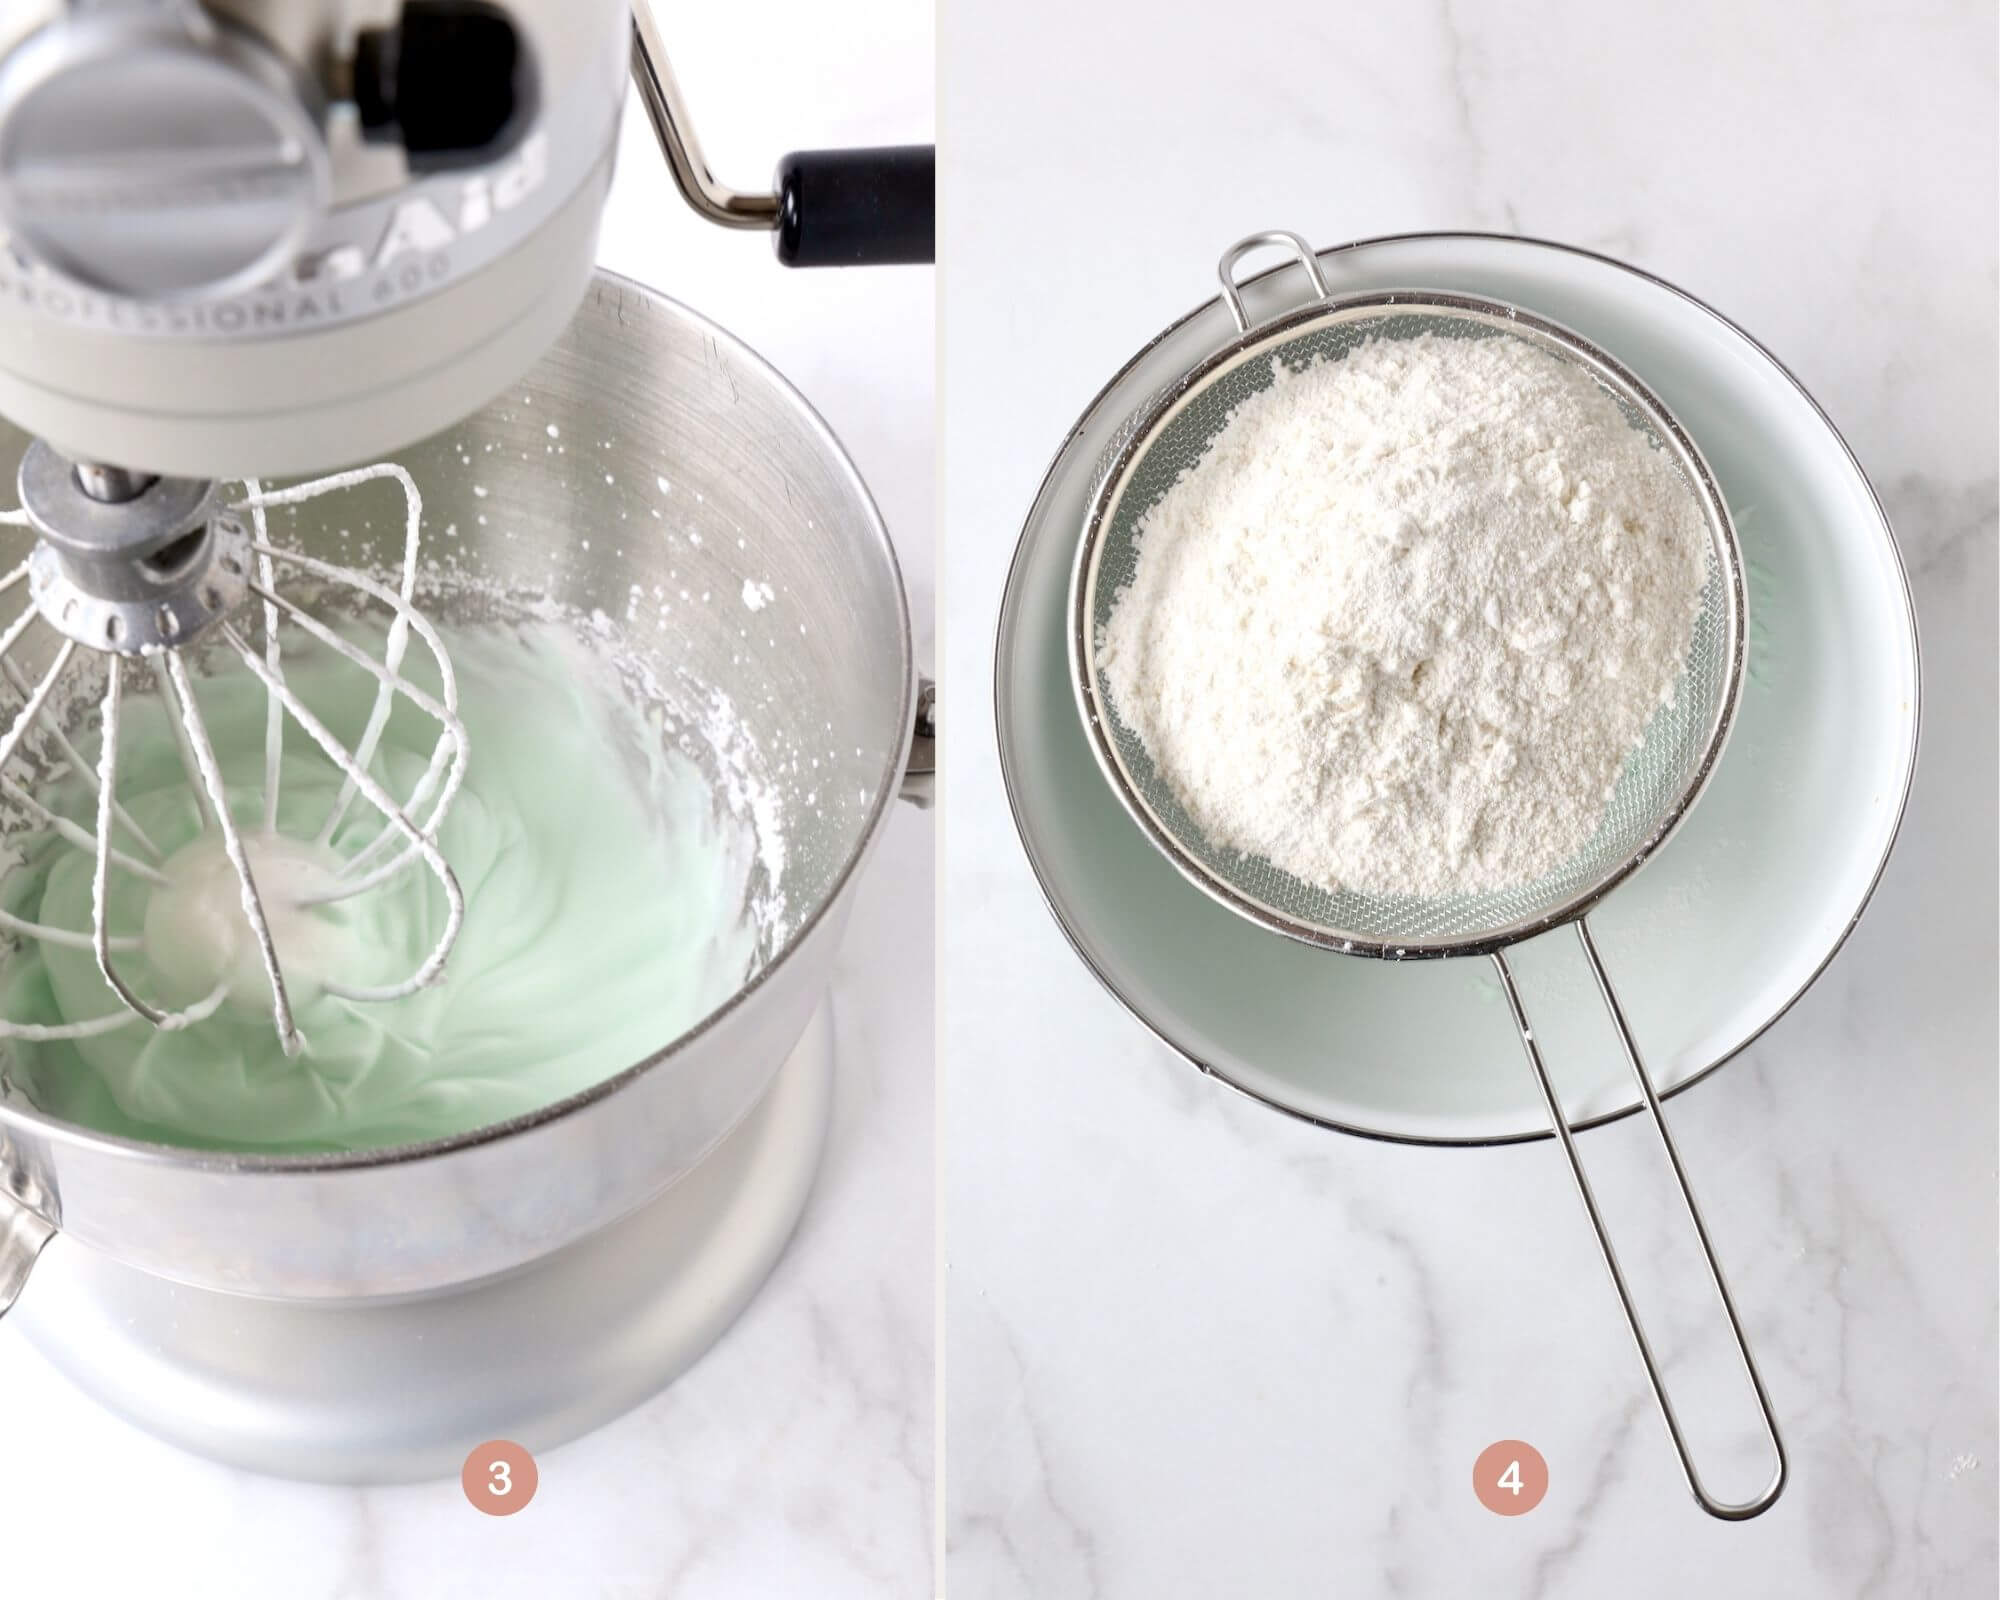 a mixer with meringue with green food coloring next to a bowl with a sifter of powdered sugar and almond flour.